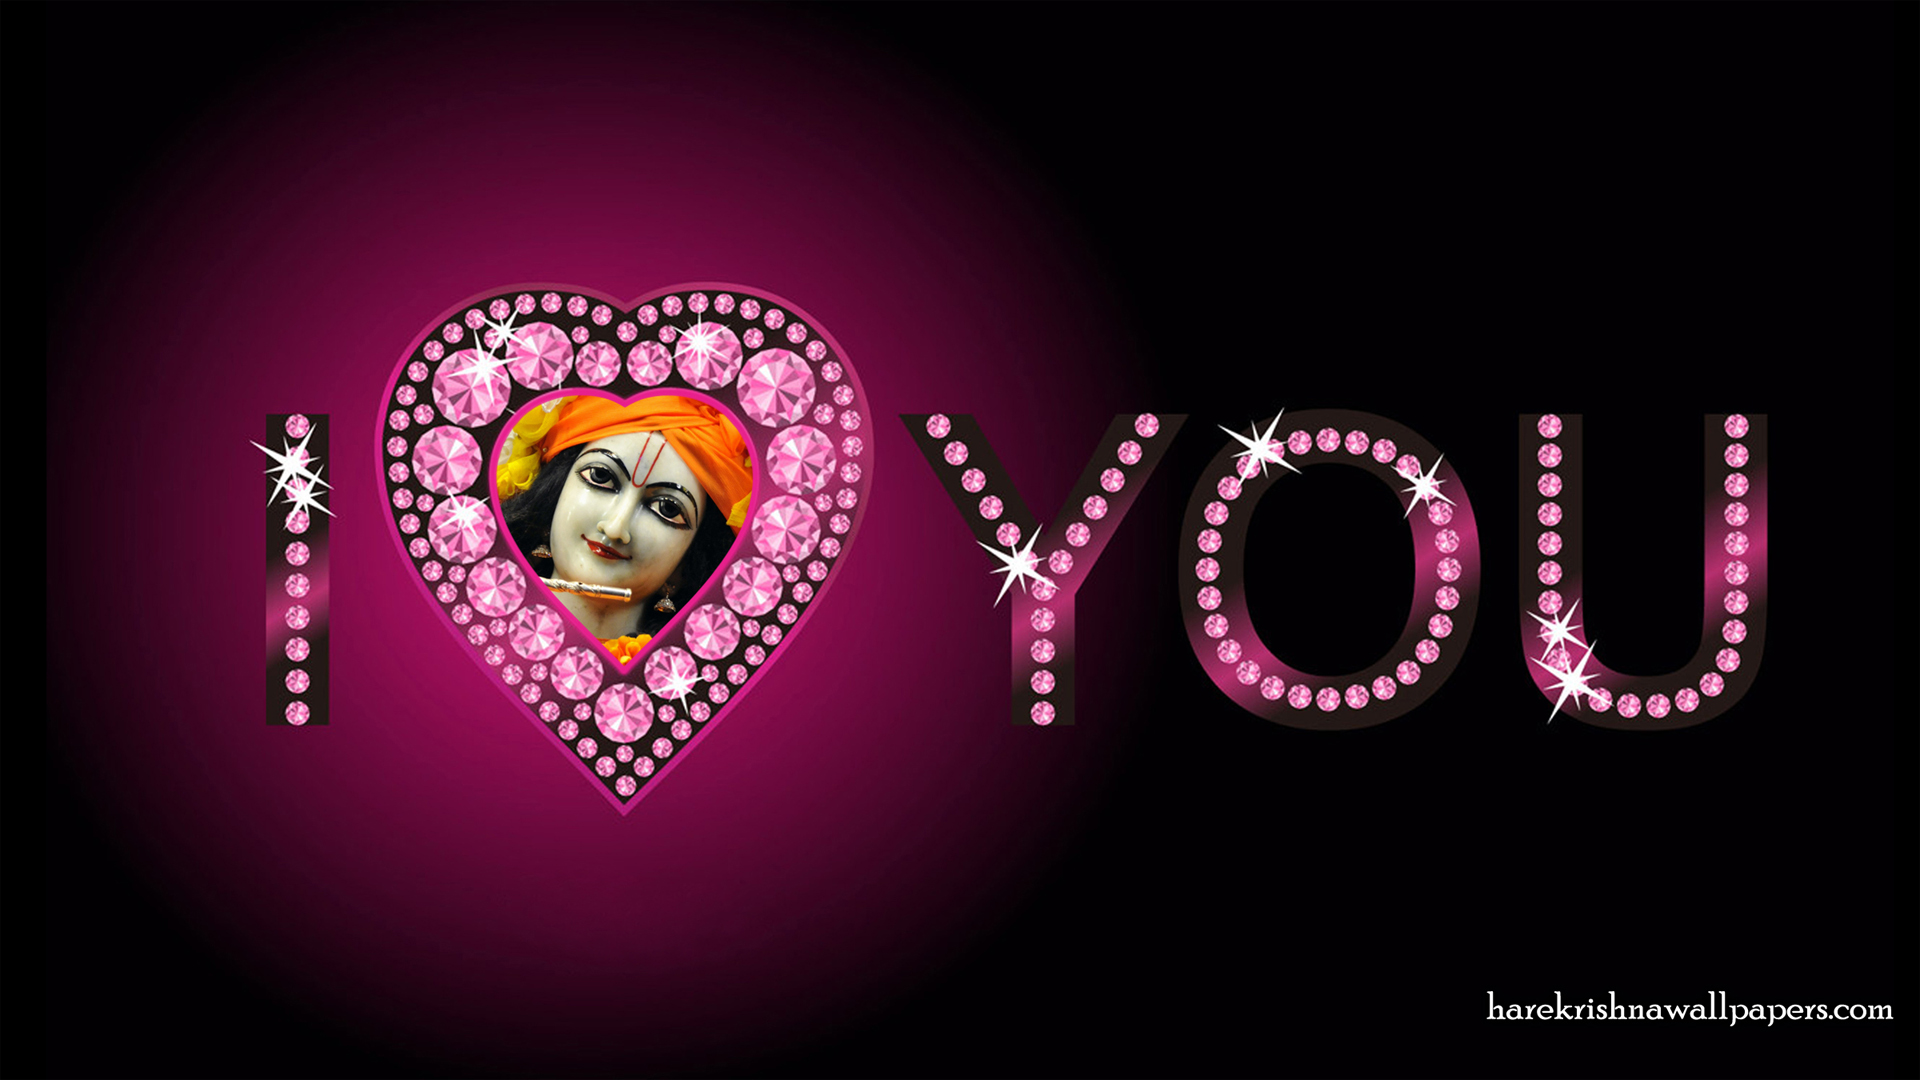 I Love You Gopinath Wallpaper (001) Size 1920x1080 Download